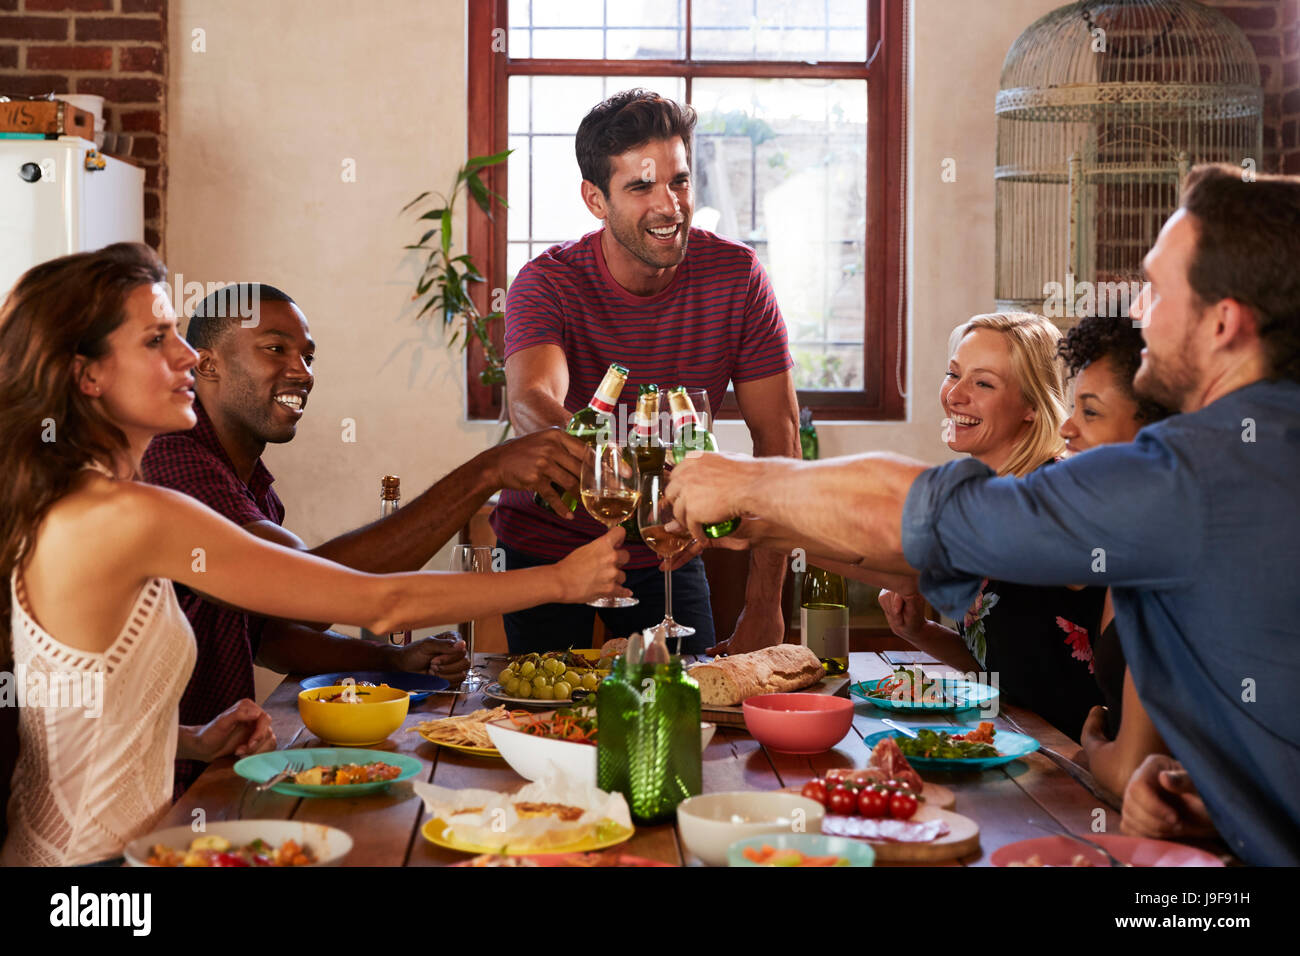 Host and friends making a toast at a dinner party - Stock Image